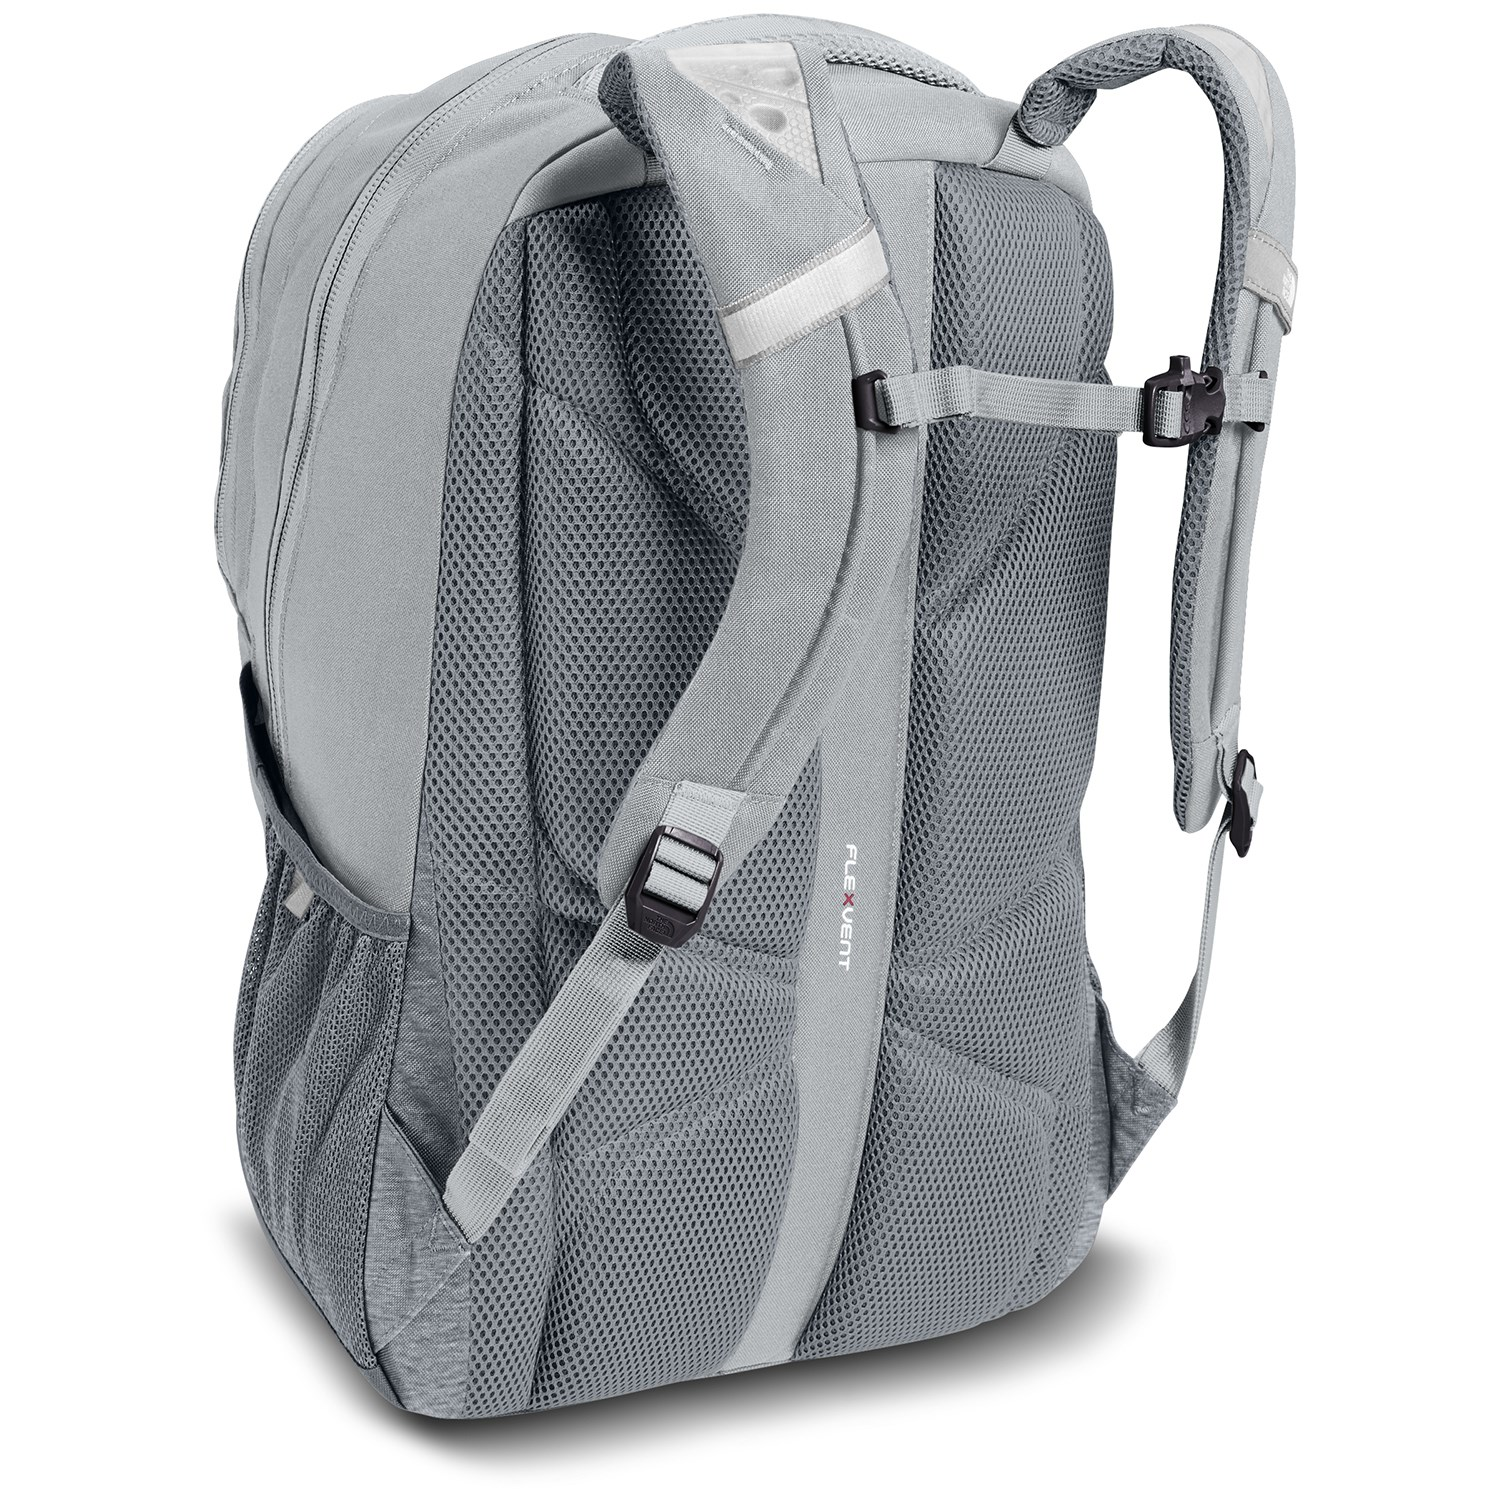 c1d0d0788 North Face Jester Backpack Grey - CEAGESP